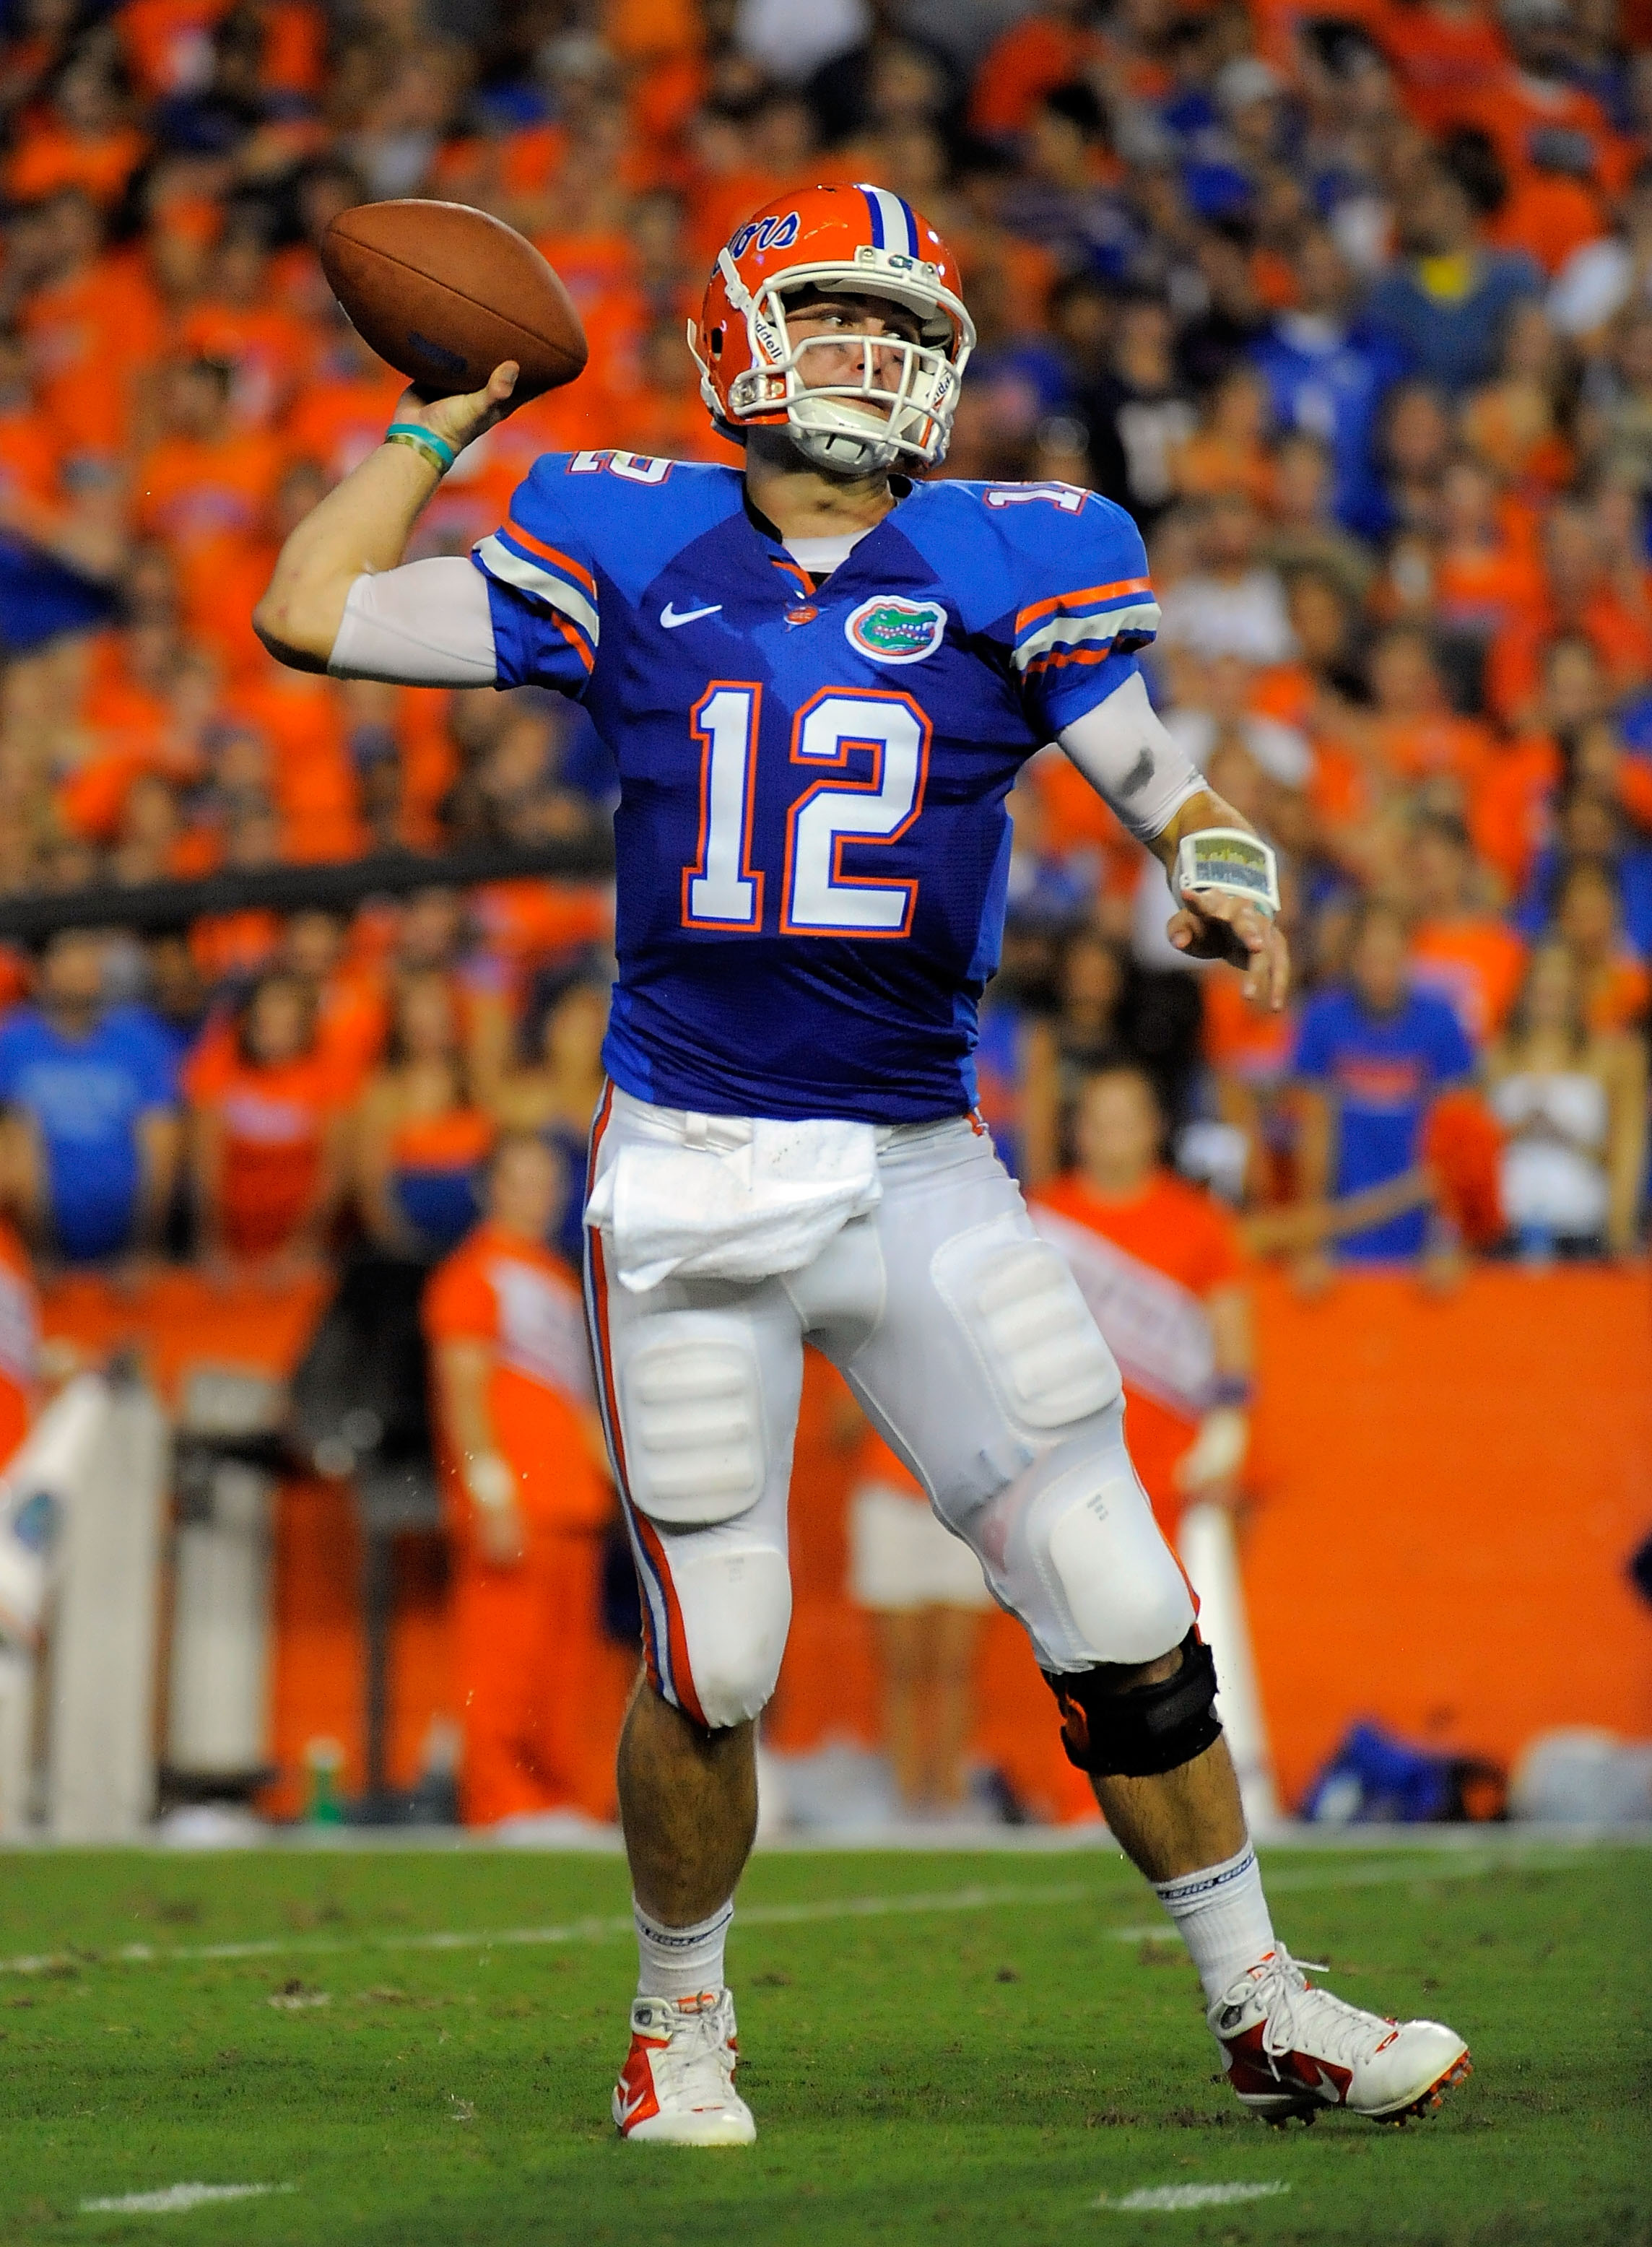 GAINESVILLE, FL - SEPTEMBER 25:  Quarterback John Brantley #12 of the Florida Gators throws a pass against the Kentucky Wildcats at Ben Hill Griffin Stadium on September 25, 2010 in Gainesville, Florida.  (Photo by Doug Benc/Getty Images)